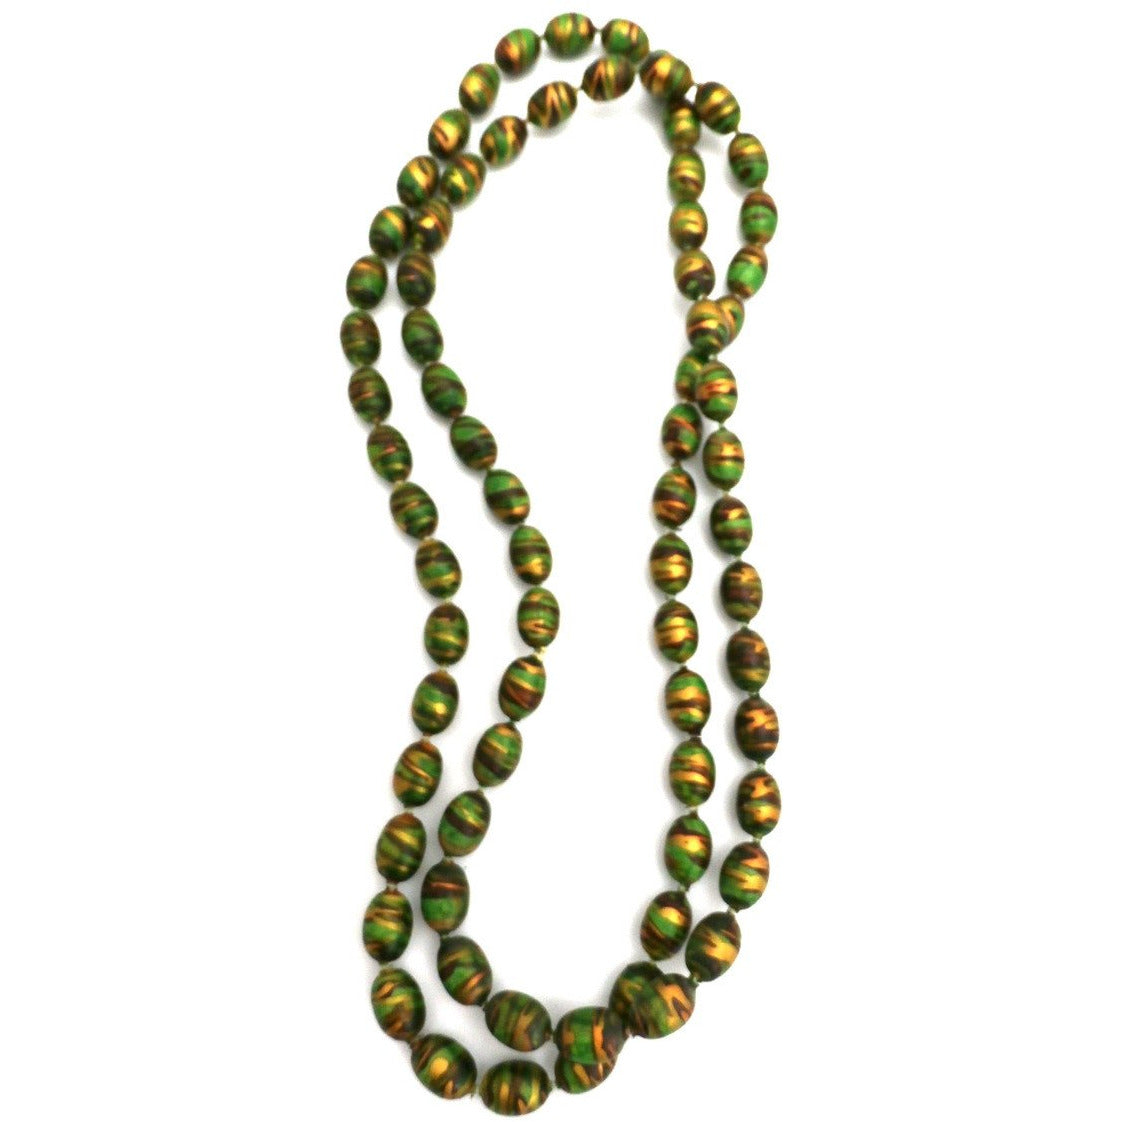 "Vintage Necklace Paper Mache Beads 1920s Green Copper Gold 35"" - The Best Vintage Clothing  - 1"